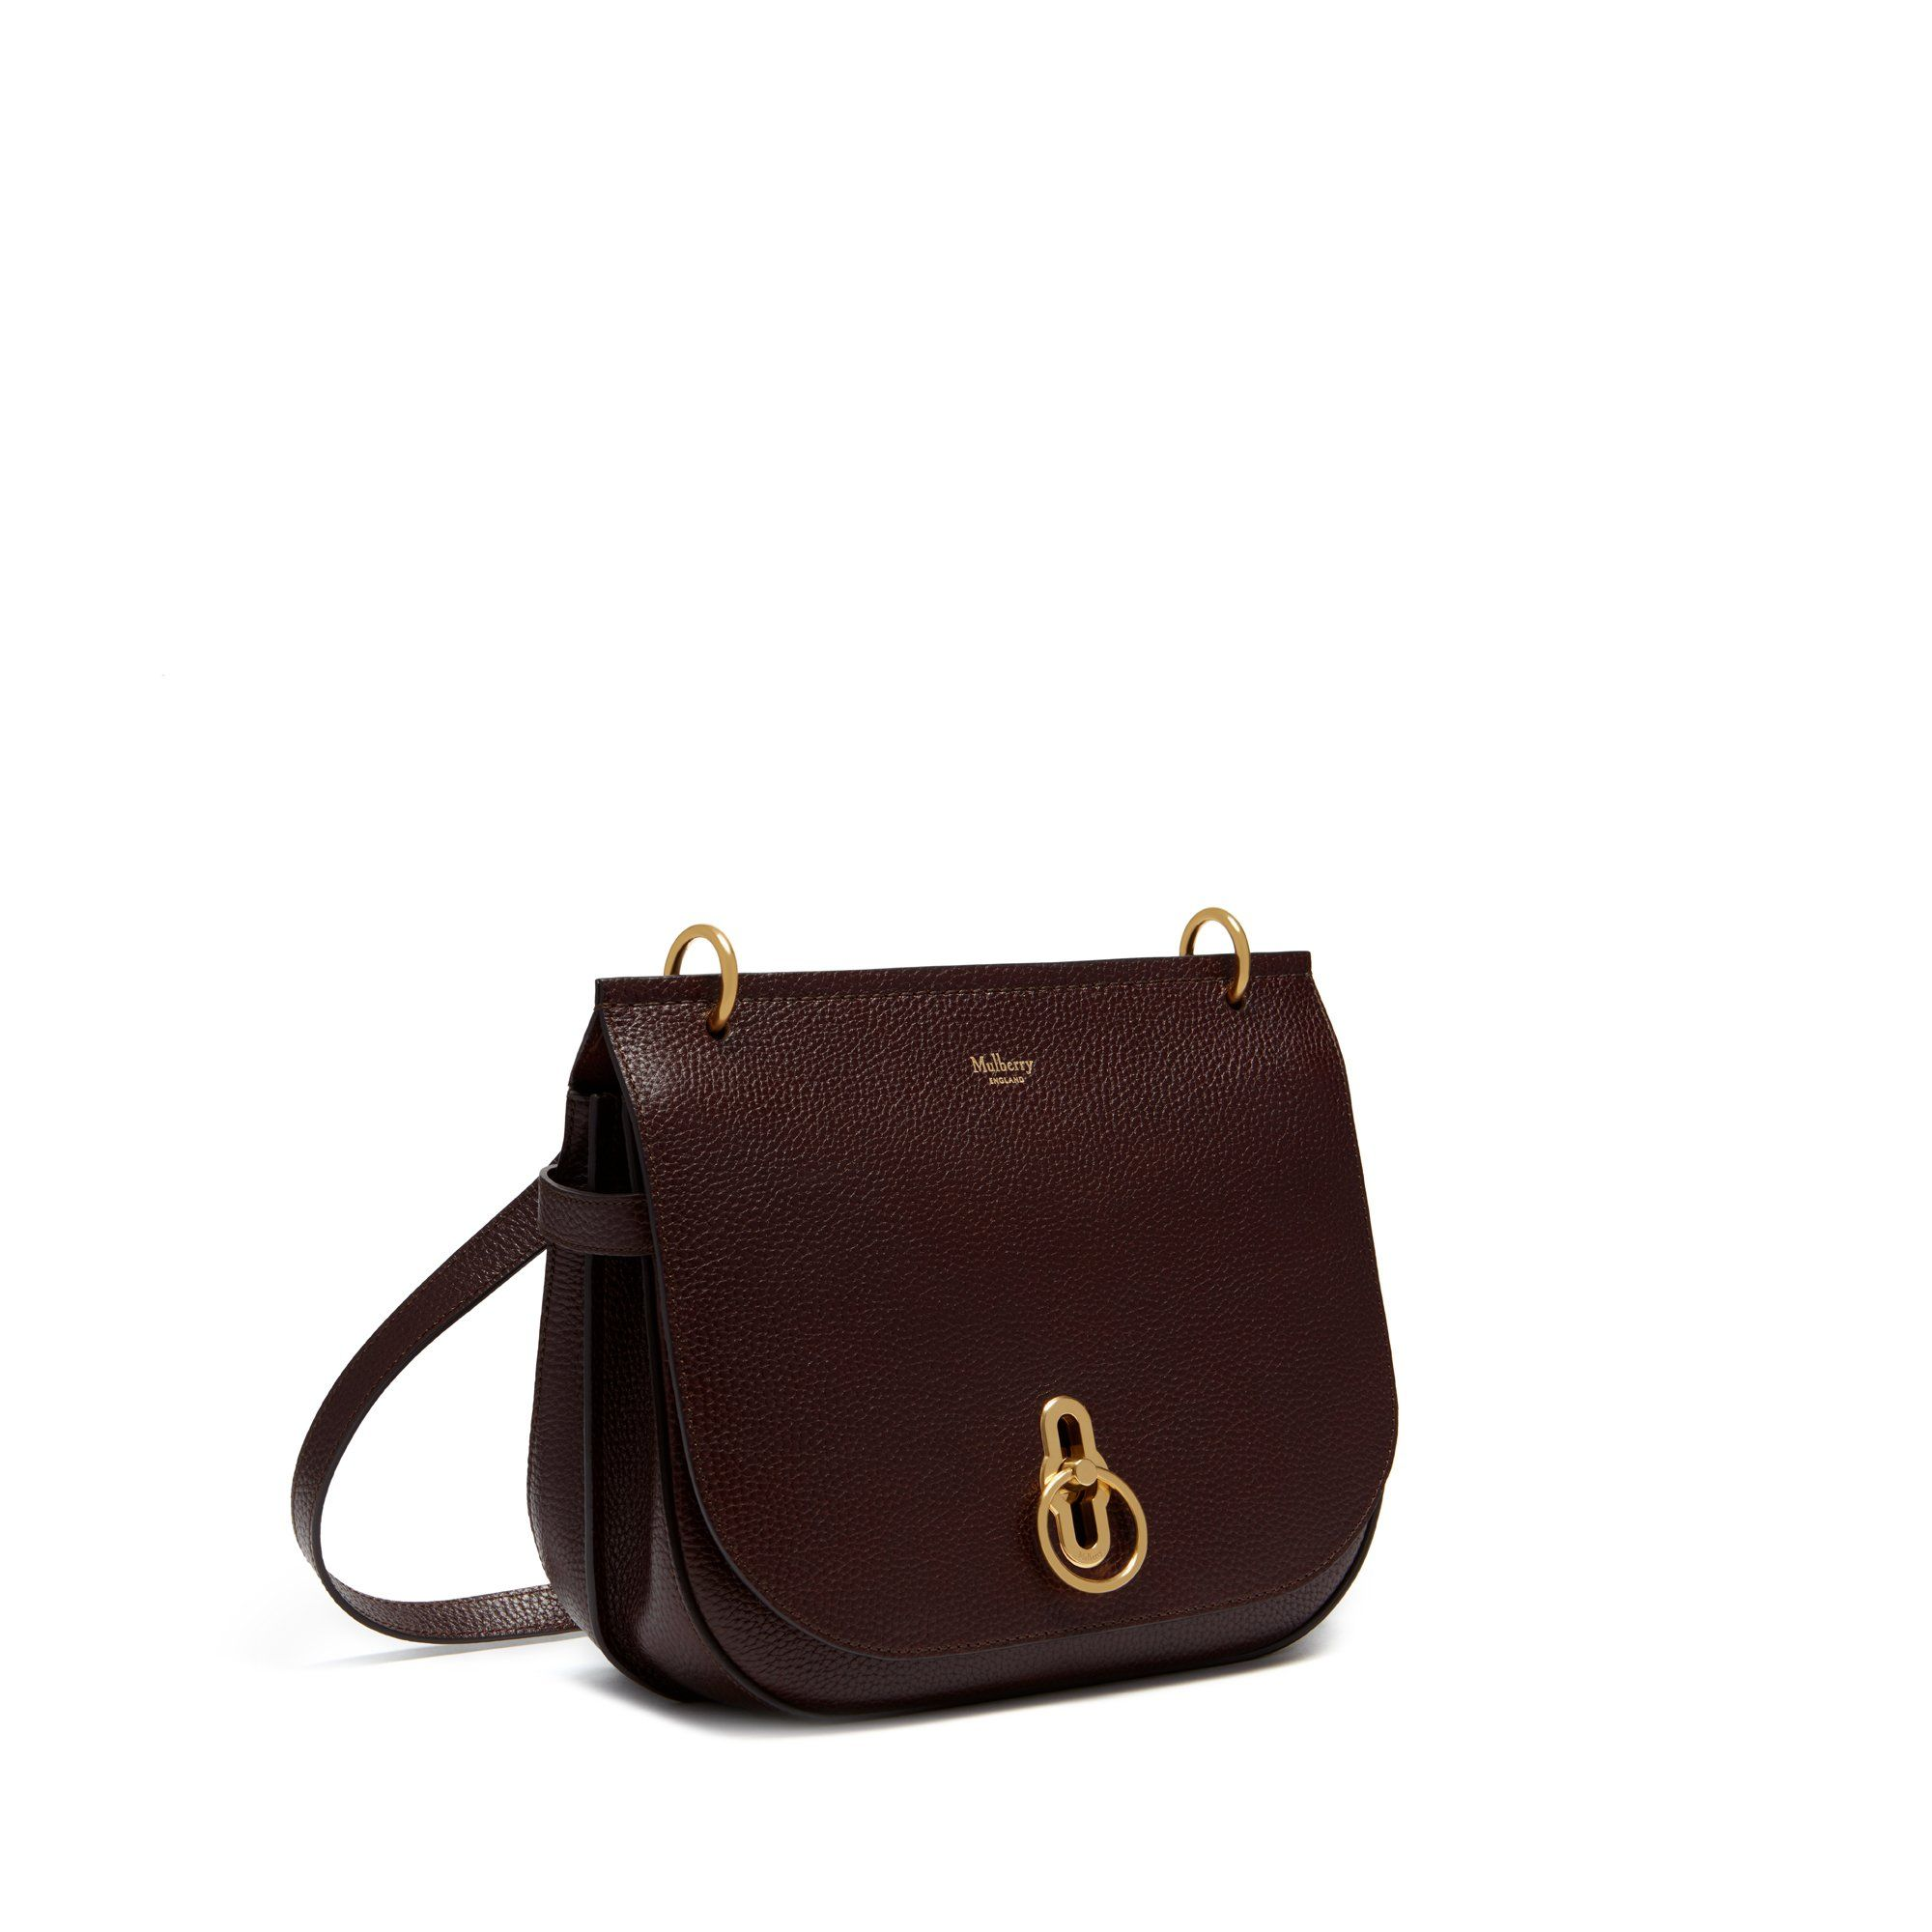 e4af47cce96 Shoulder Bags   Women s Bags   Women   Mulberry